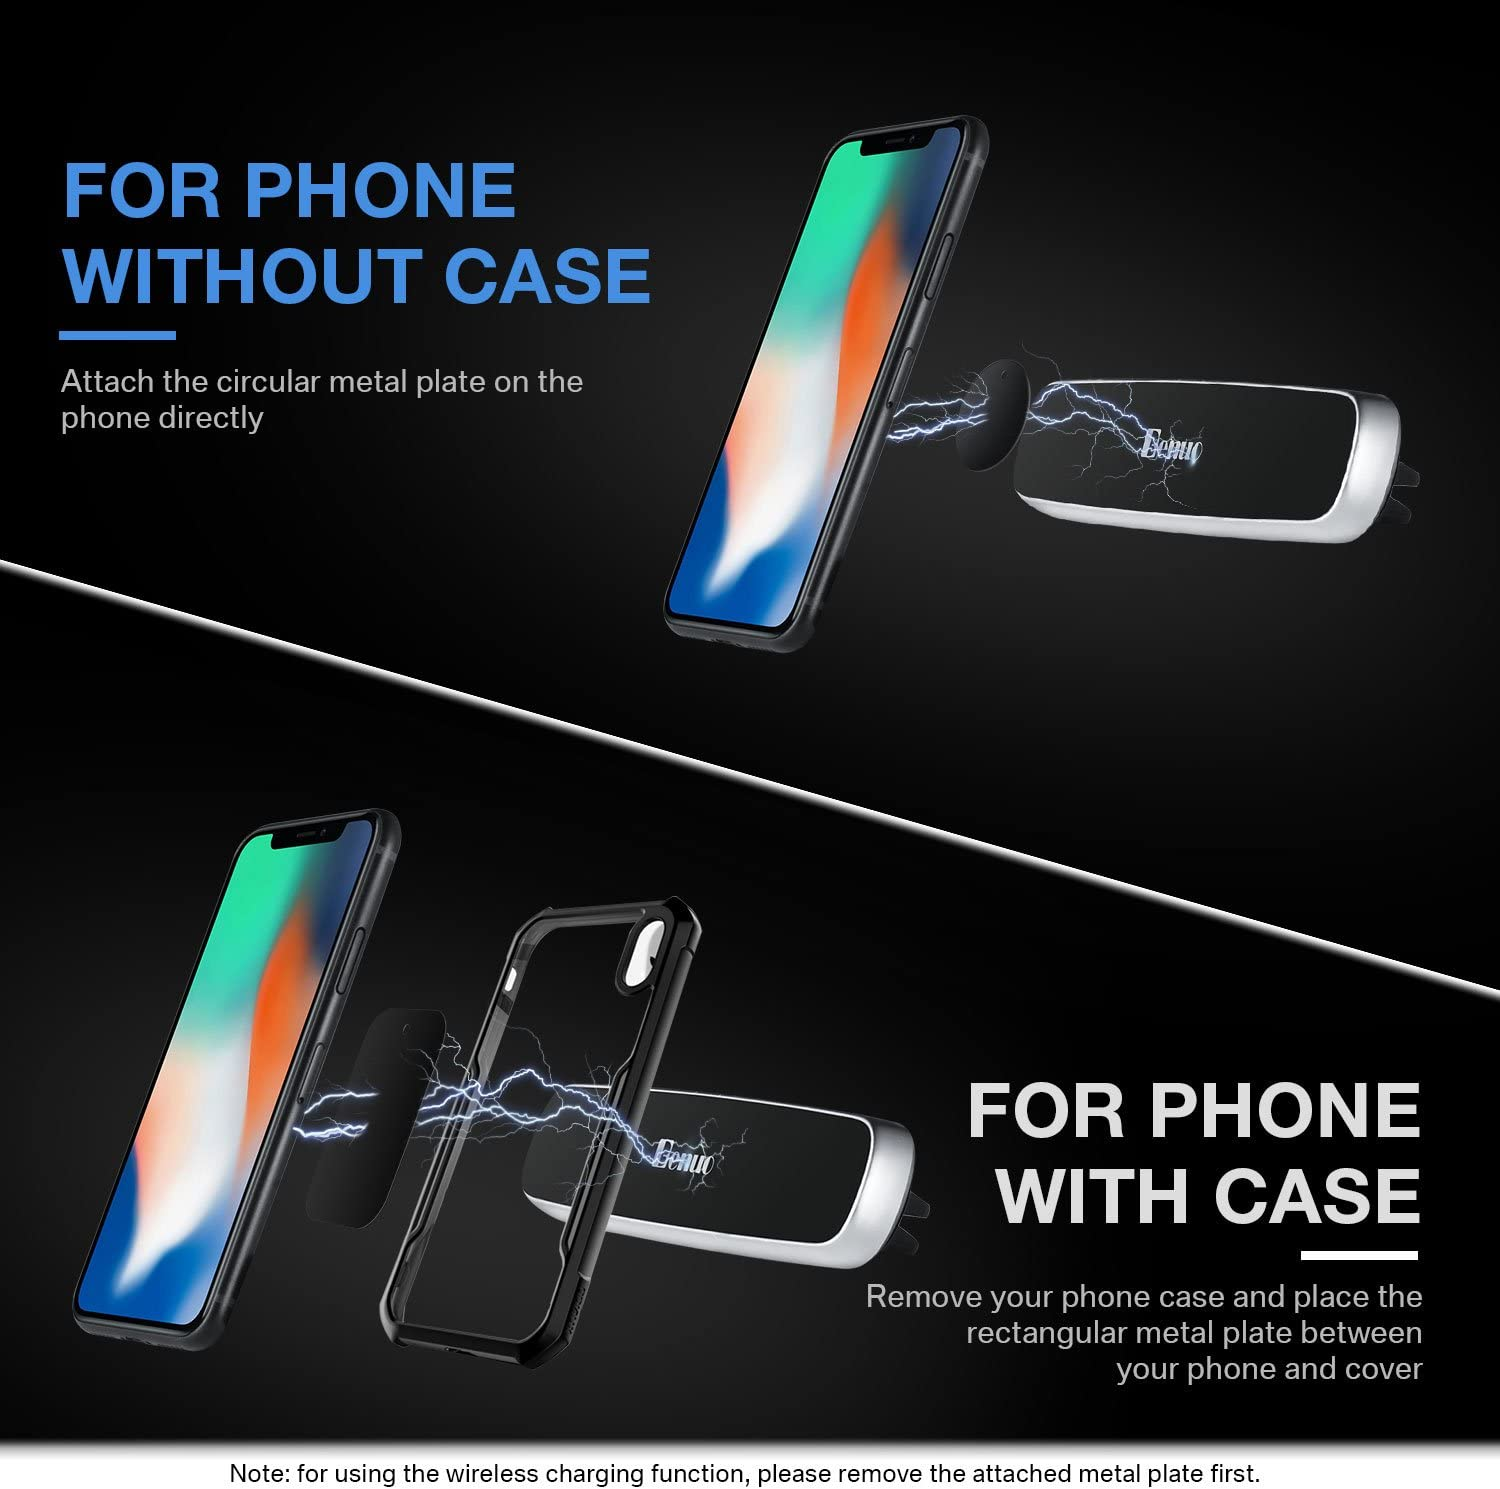 Magnetic Mount Benuo Universal Air Vent Car Cell Phone Holder with Strong Absorption Metal Plate for iPhone Xs Max,Xs,Xr,X,8 Plus,8,7 Plus,7,6S,6 Plus,6,5s,5,4s,4 Galaxy LG Sony Mini Tablet etc.